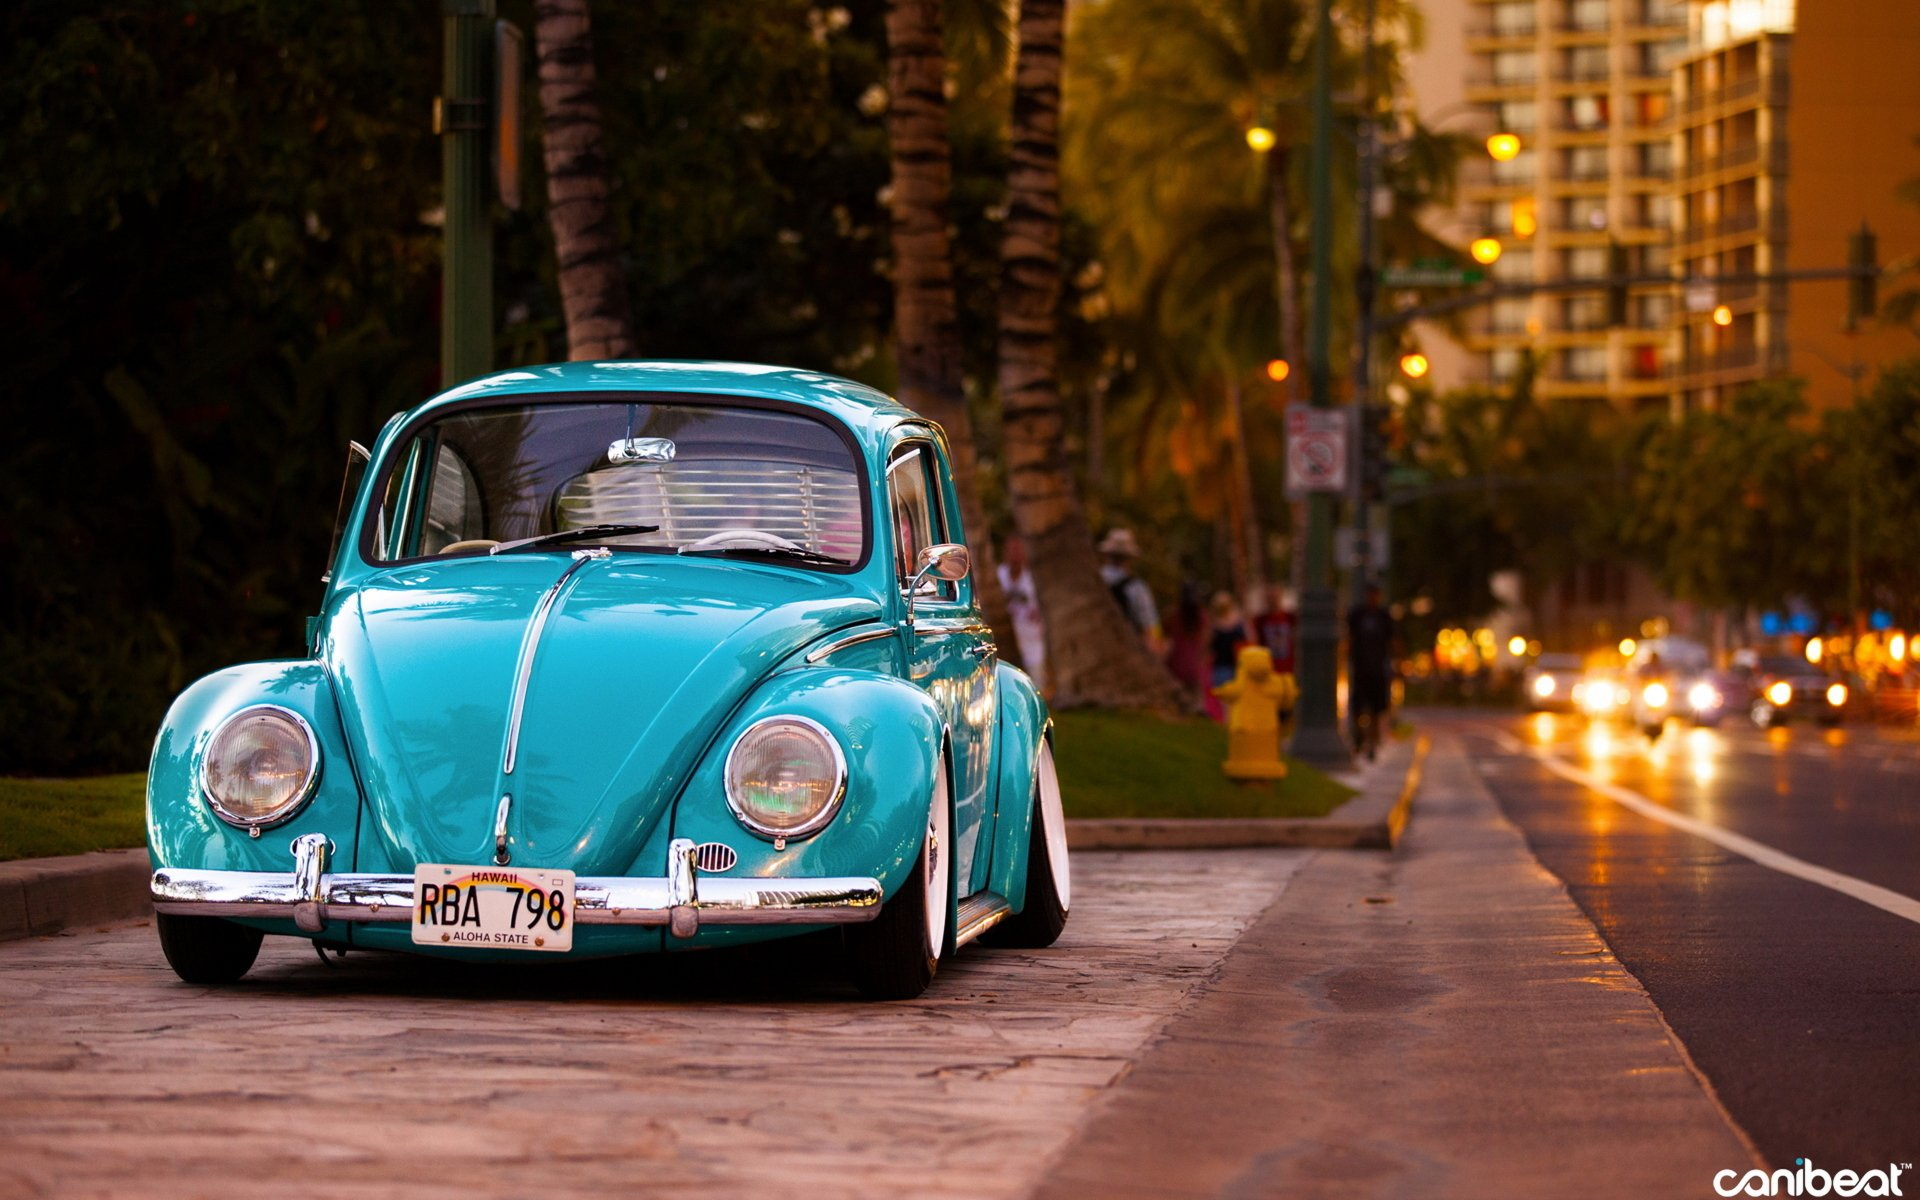 Vehicles - Volkswagen Beetle  City Blue Car Street Car Wallpaper